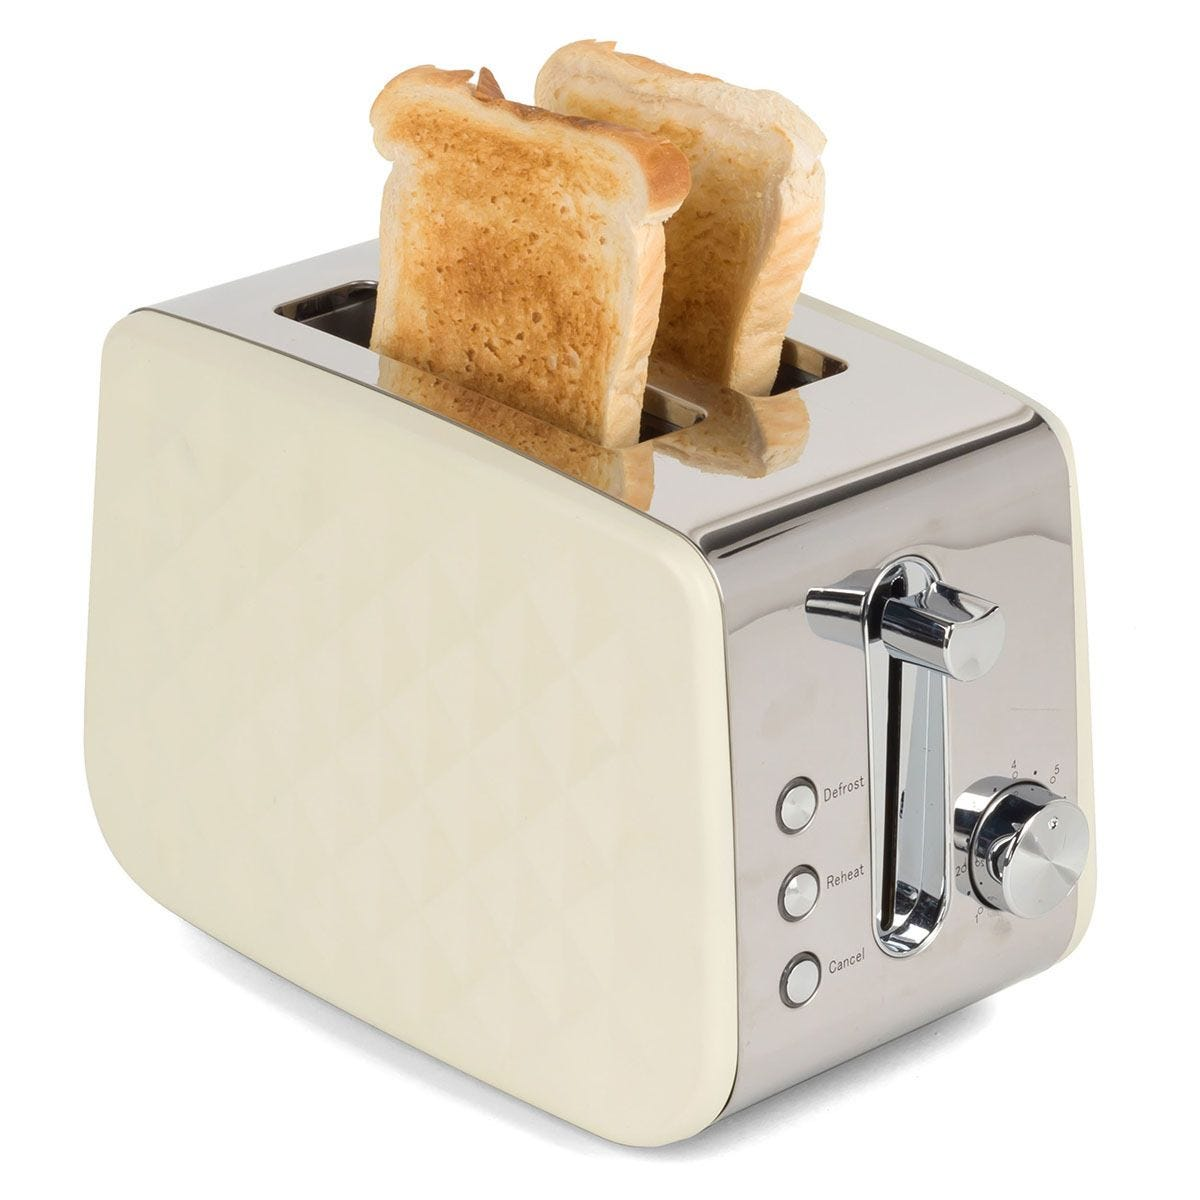 Salter EK2635CREAM 850W Two-Slice Diamond Toaster with Variable Browning Control - Cream